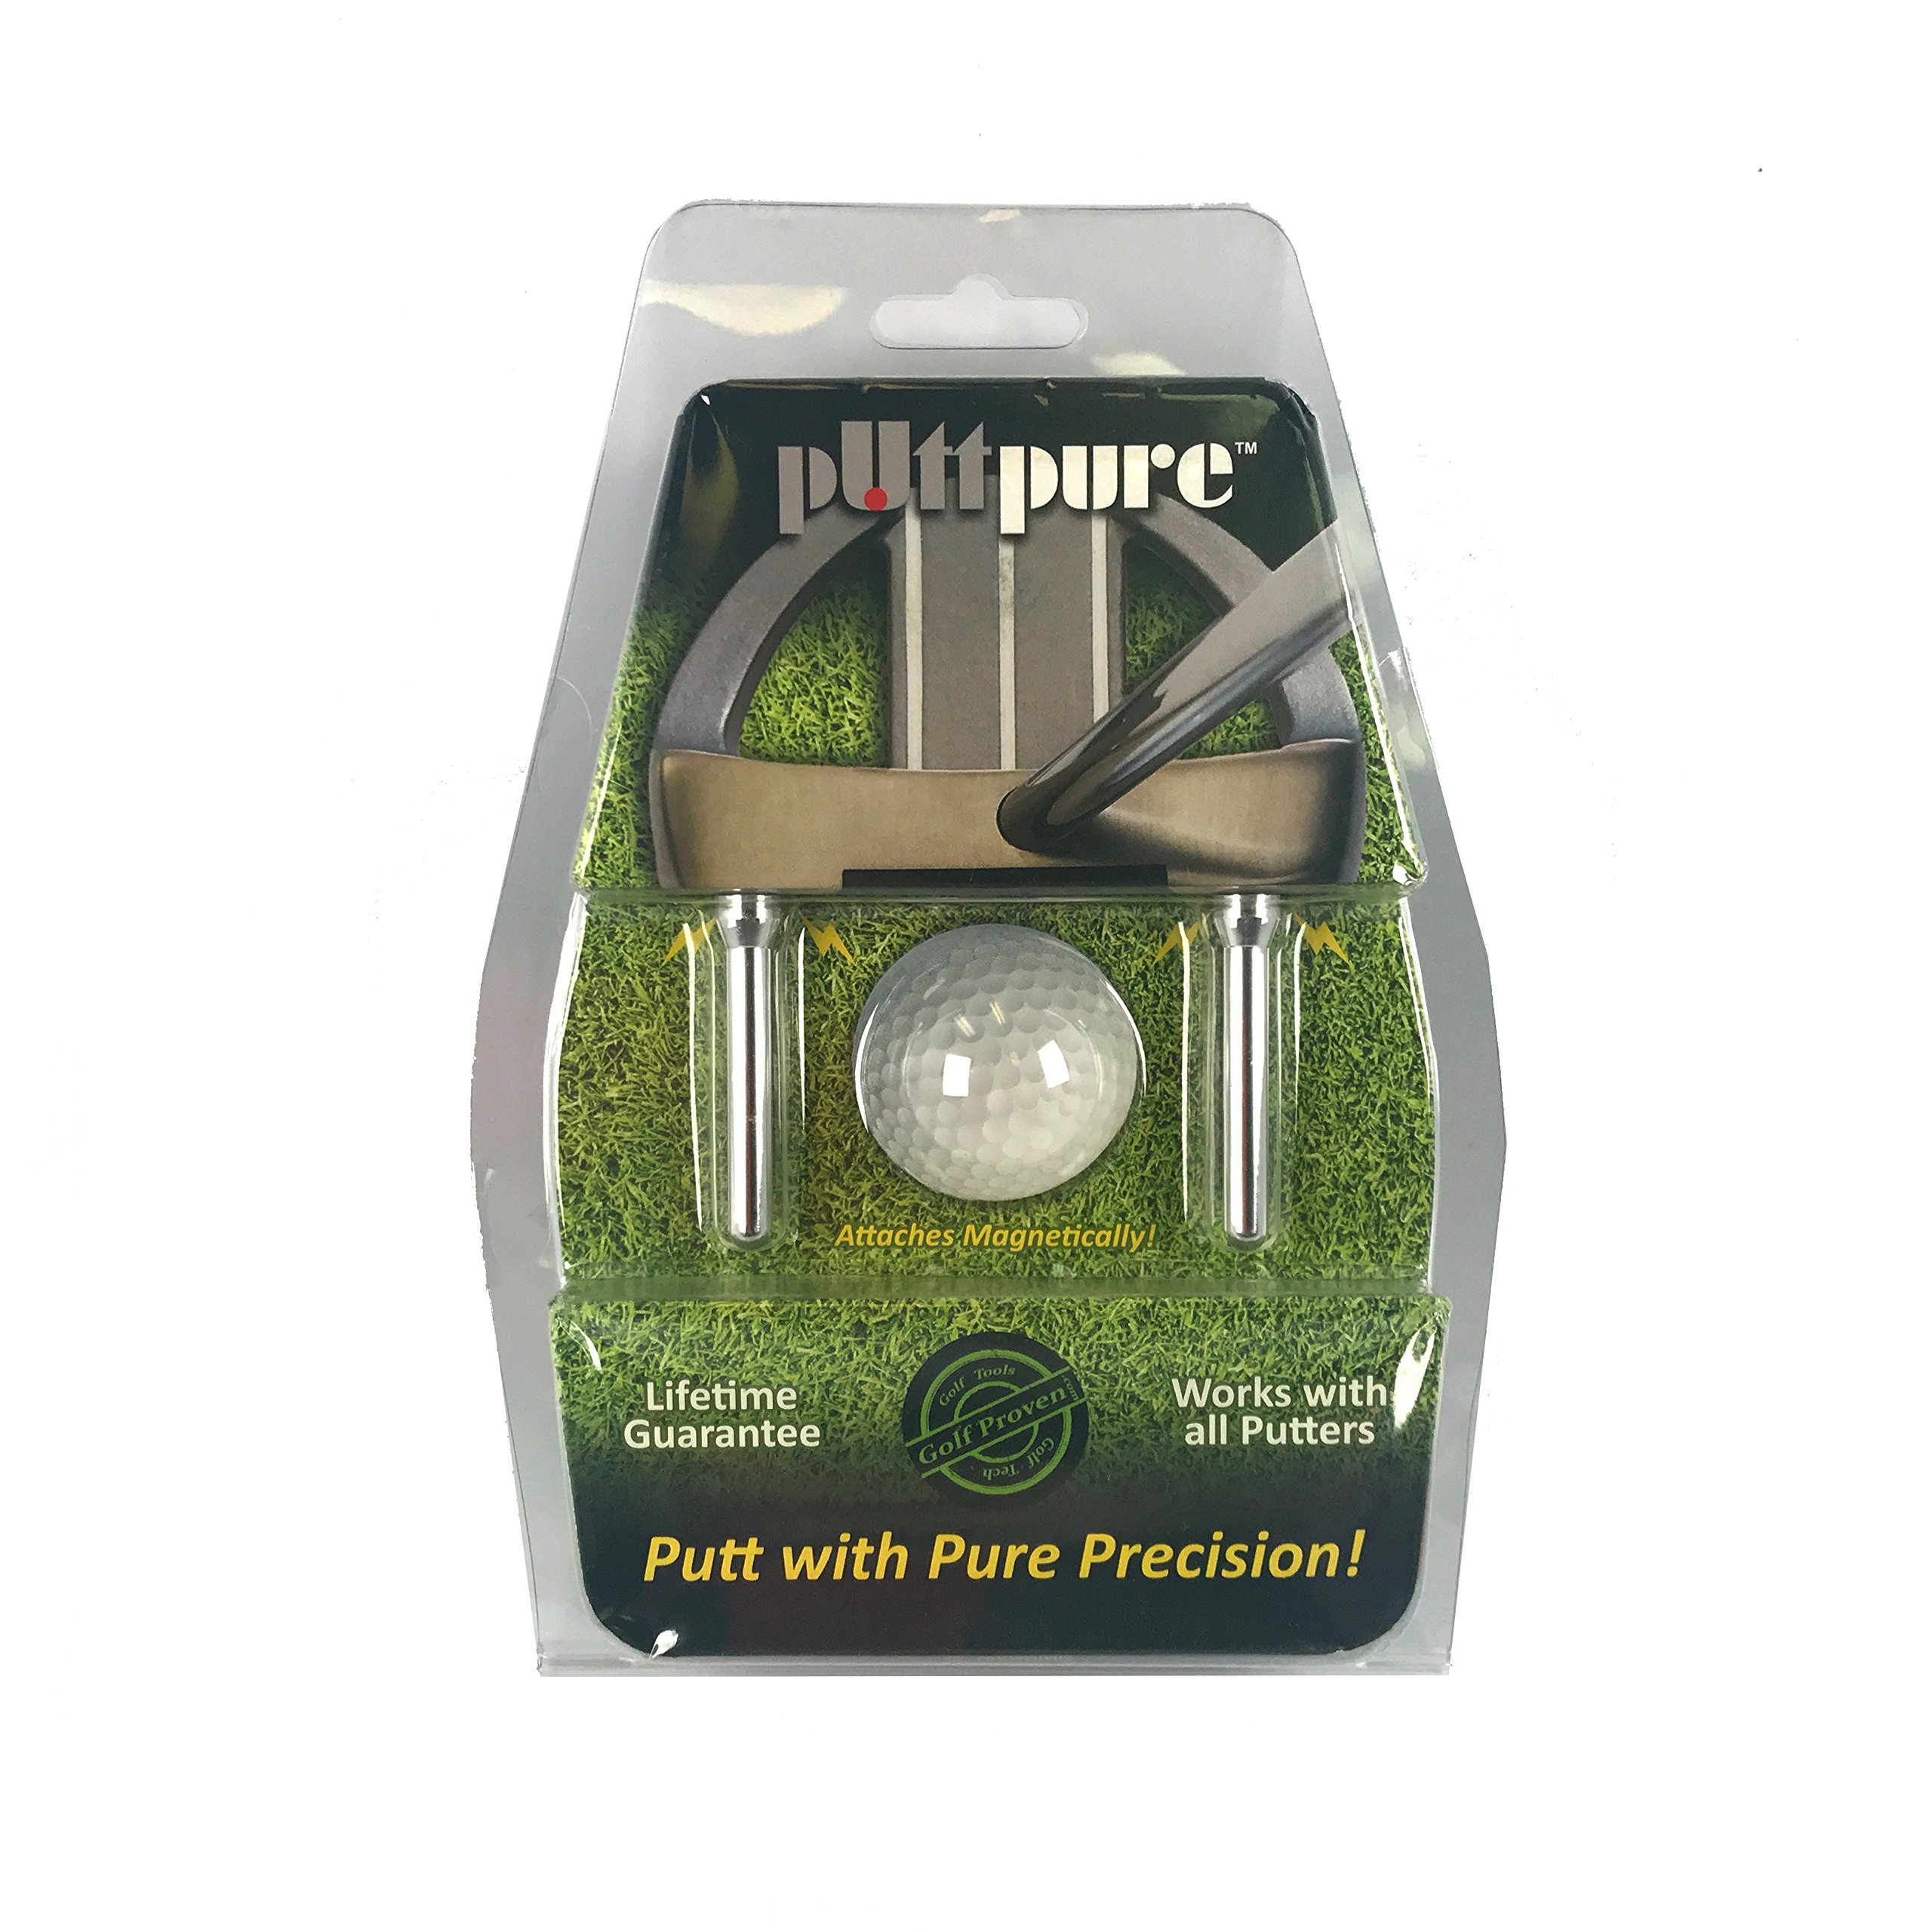 pUttpure Putting Training Aid For Pure Precision by pUttpure (Image #2)